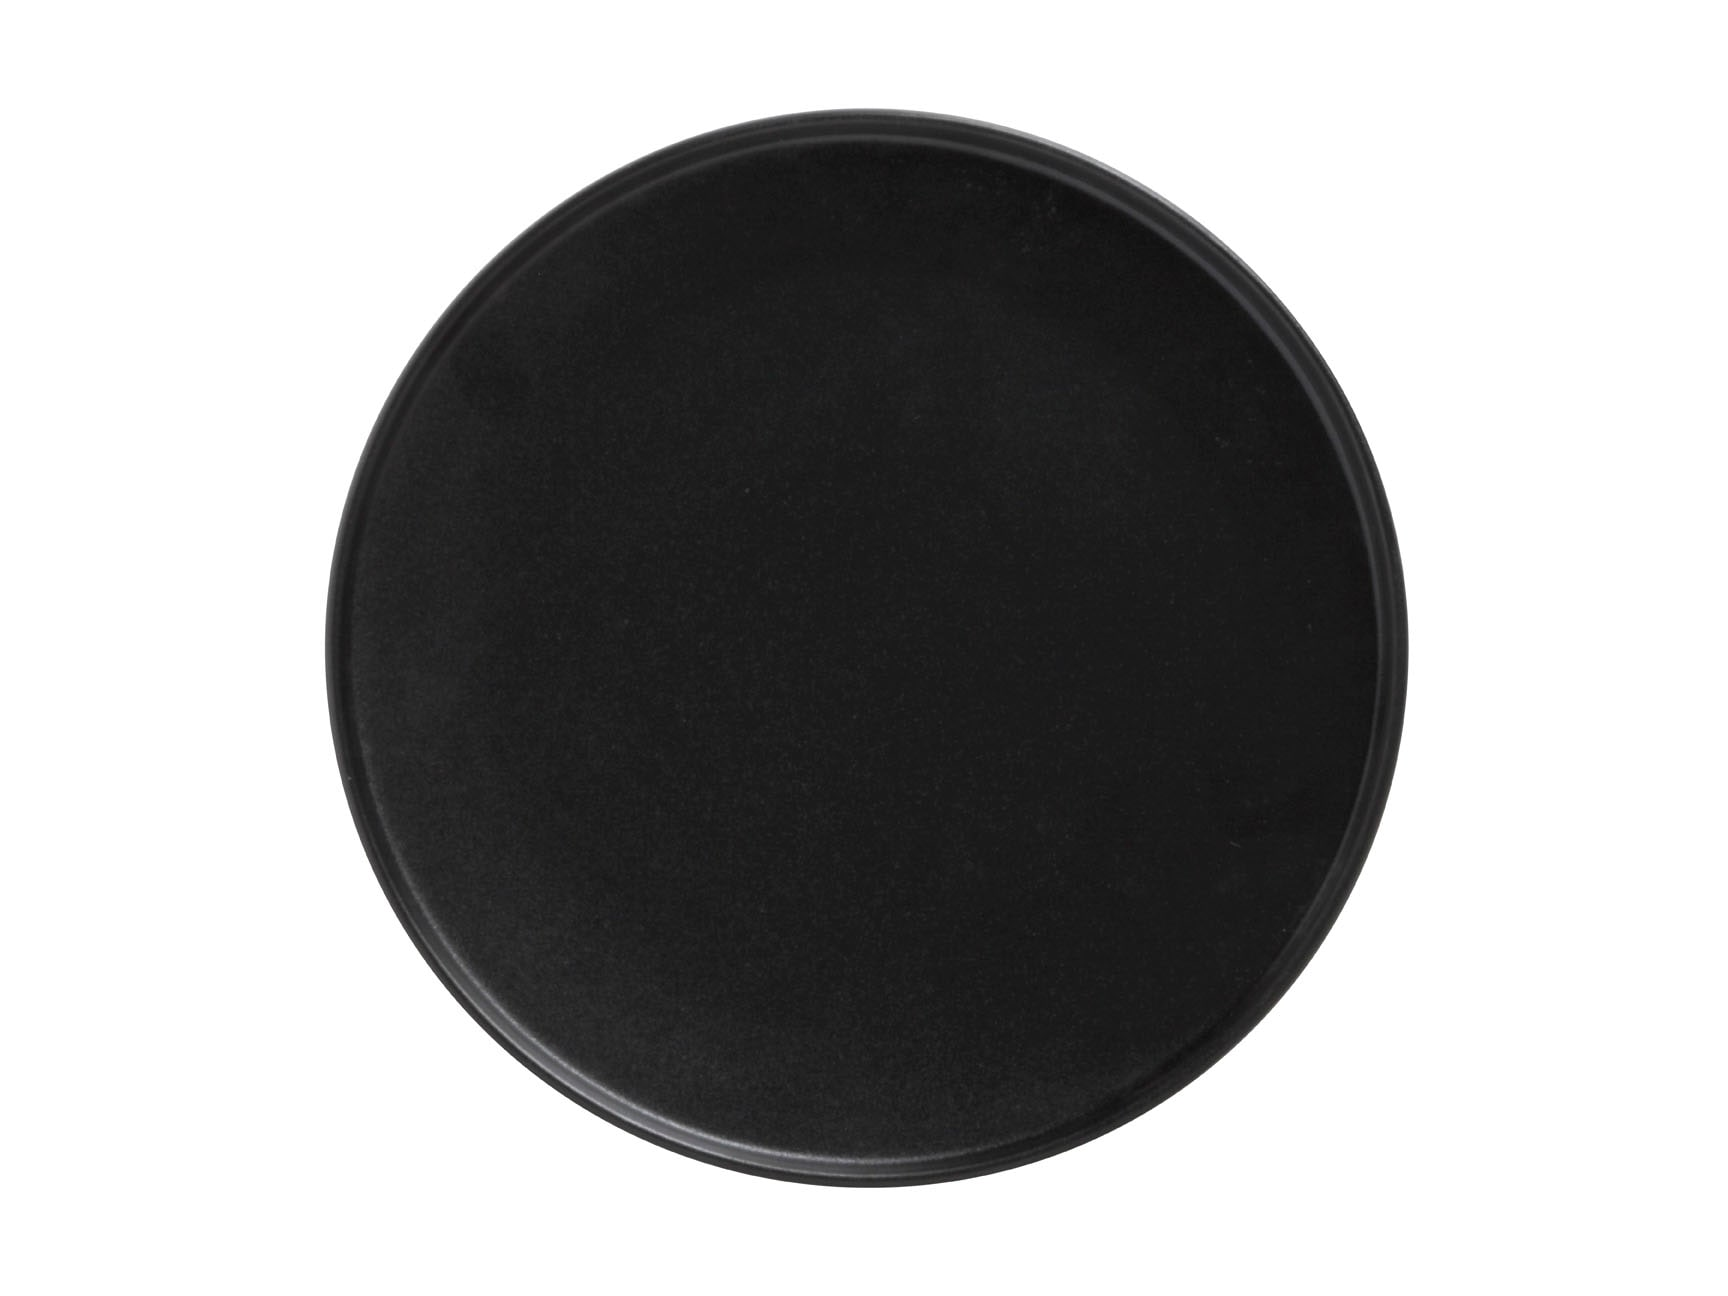 Maxwell & Williams Caviar High Rim 26.5cm Plate Black